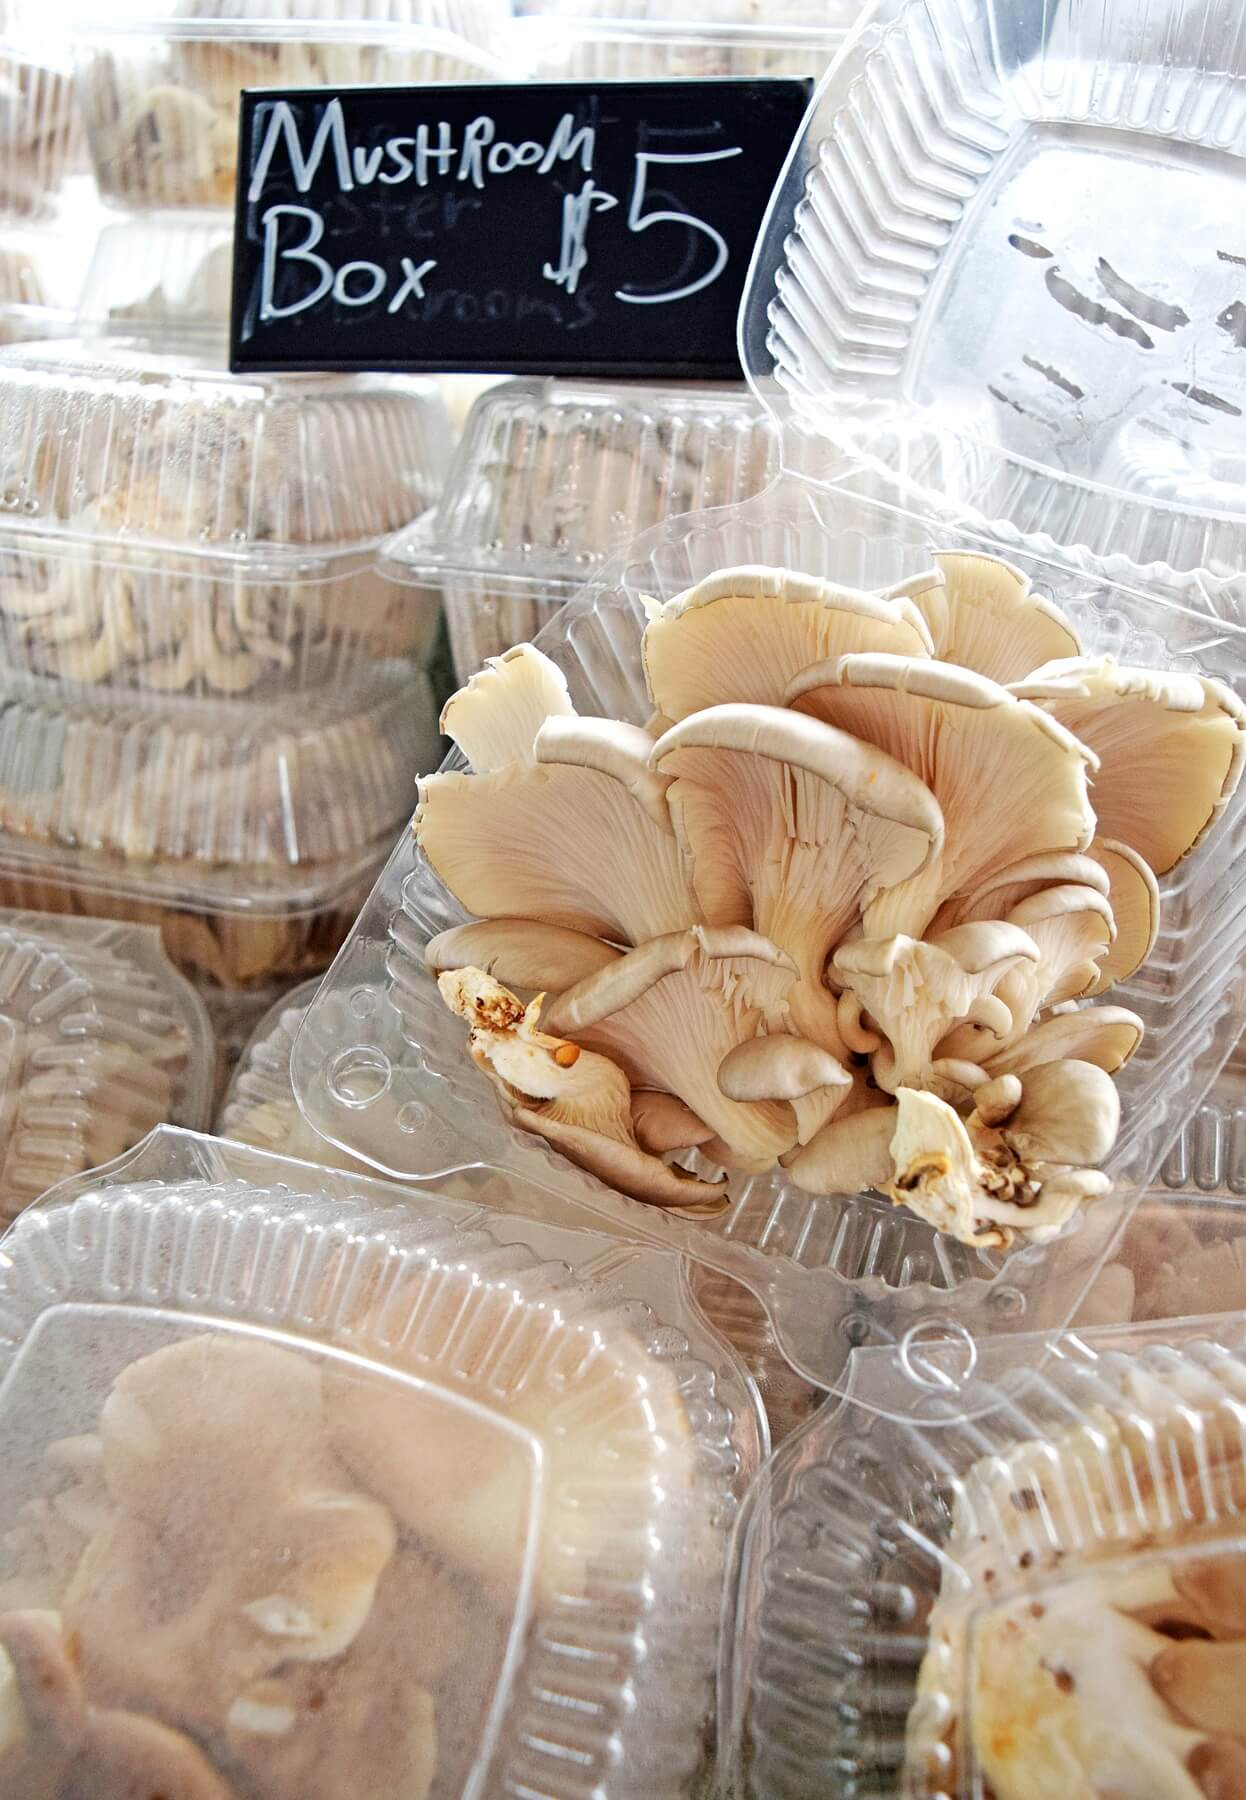 Find a box of mushrooms for $5 at the Memphis Farmers Market and the Cooper-Young Community Farmers Market.